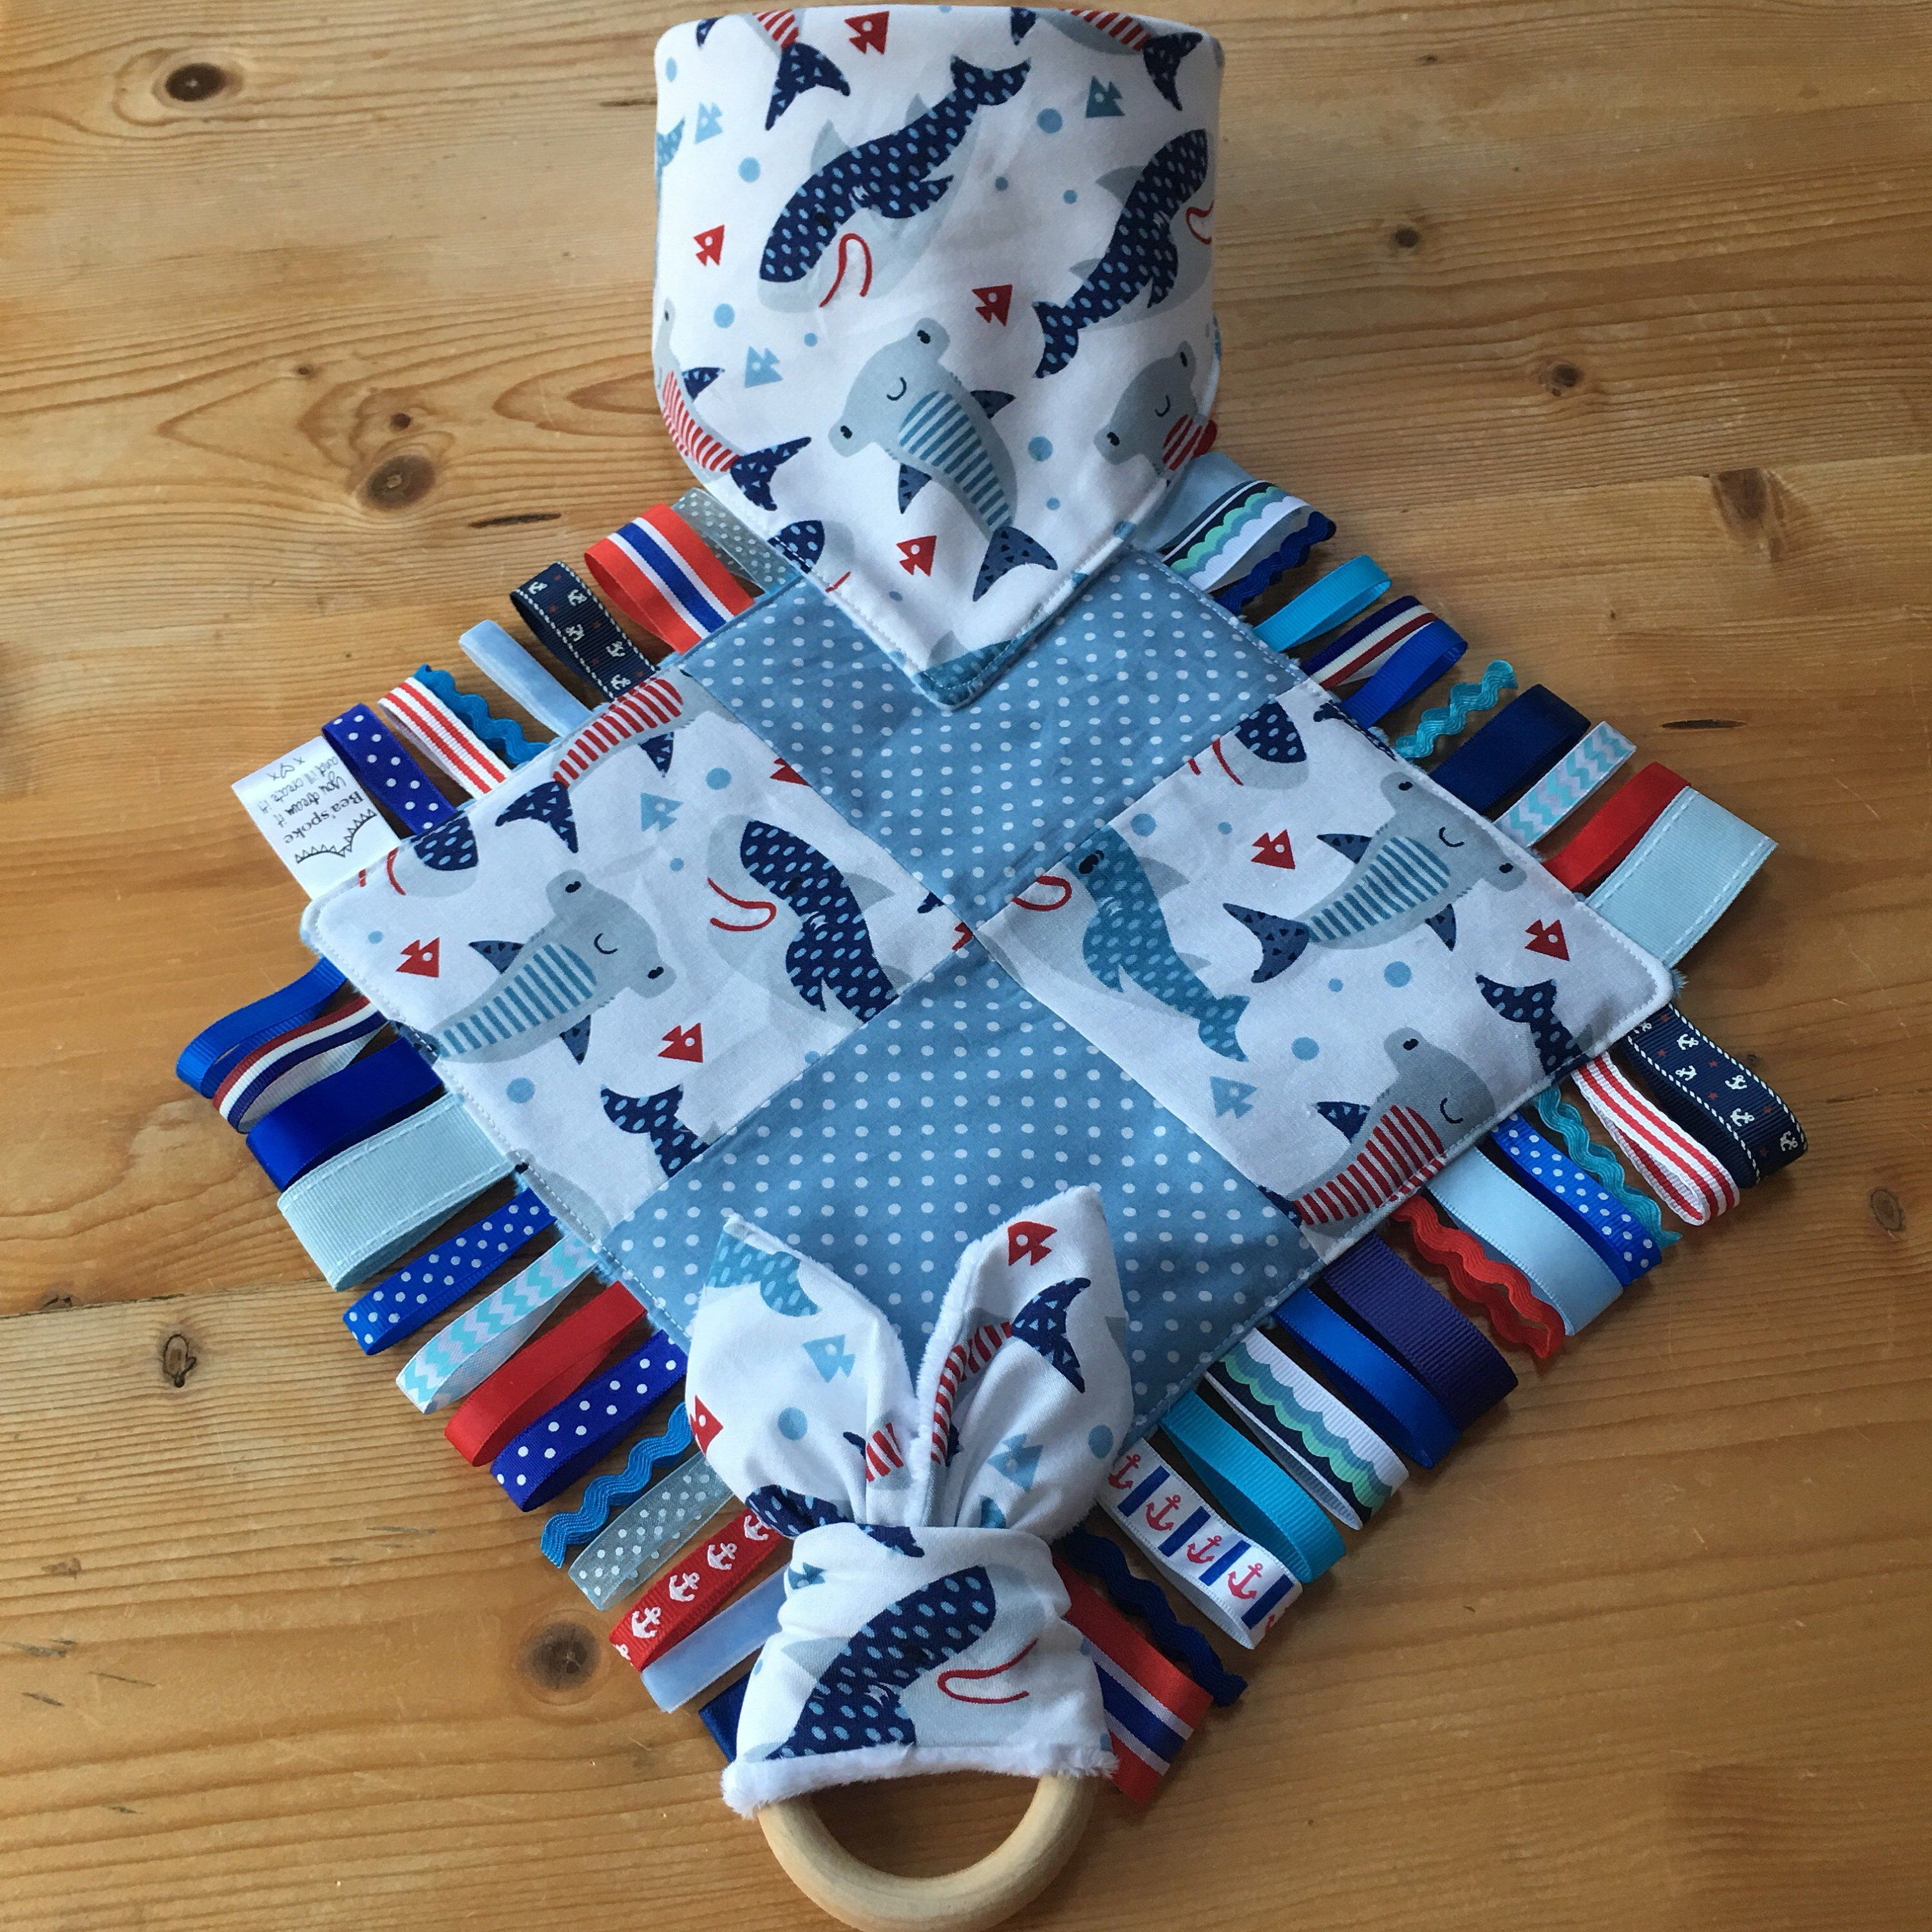 Excited to share this item from Bea spoke s  etsy shop  Baby Shark Ribbon  Taggy Blanket Sea Ocean Shower Gift Nautical Blue Teether Ring Quilt Boy  Nursery ... 1e8e57ab4